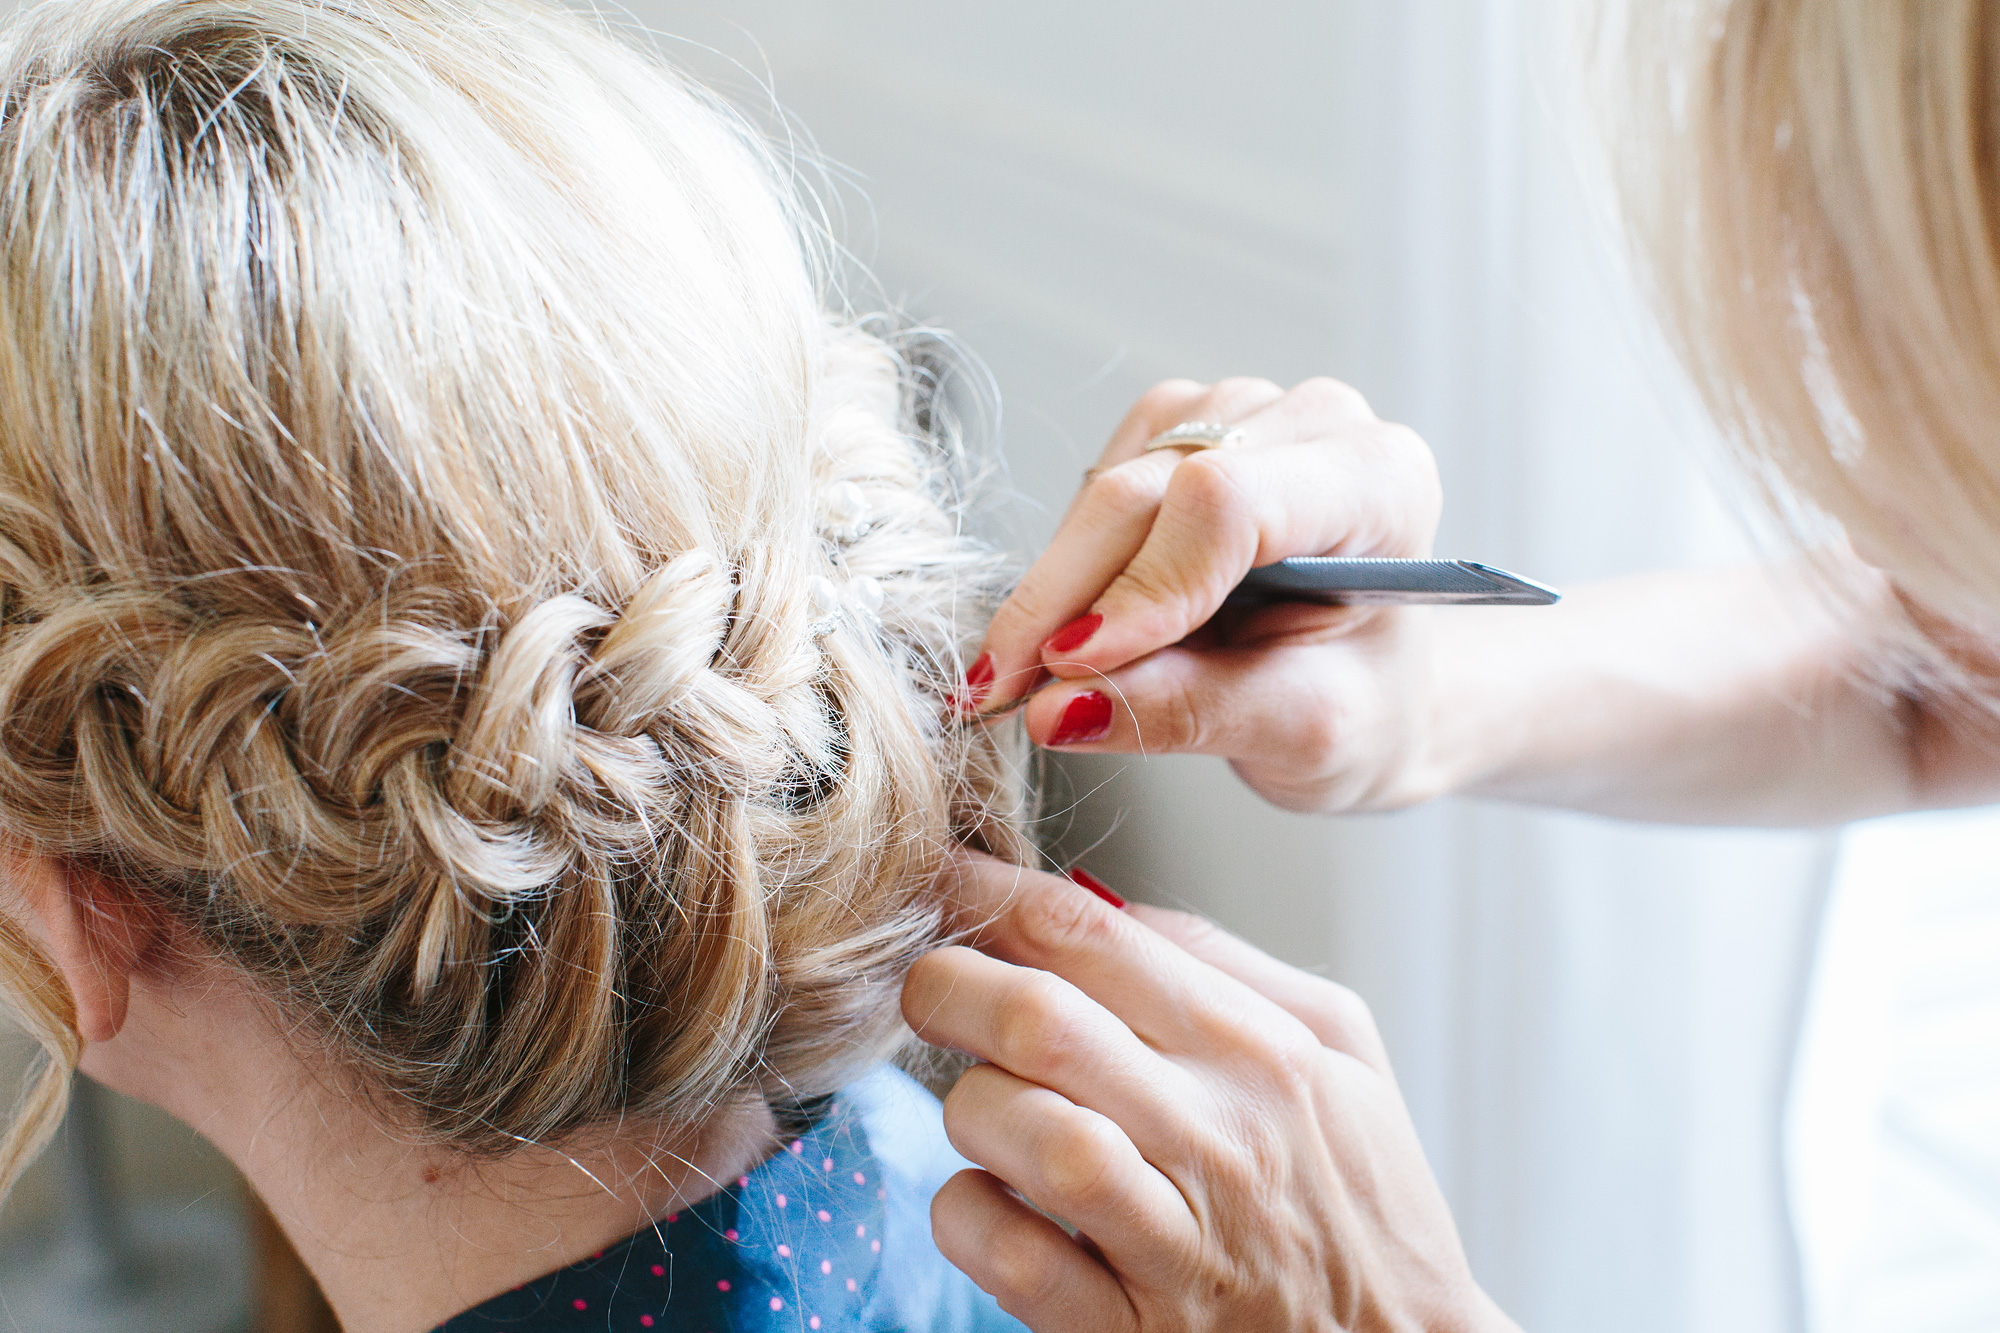 Getting ready before the Civil Wedding captured by Carin Olsson